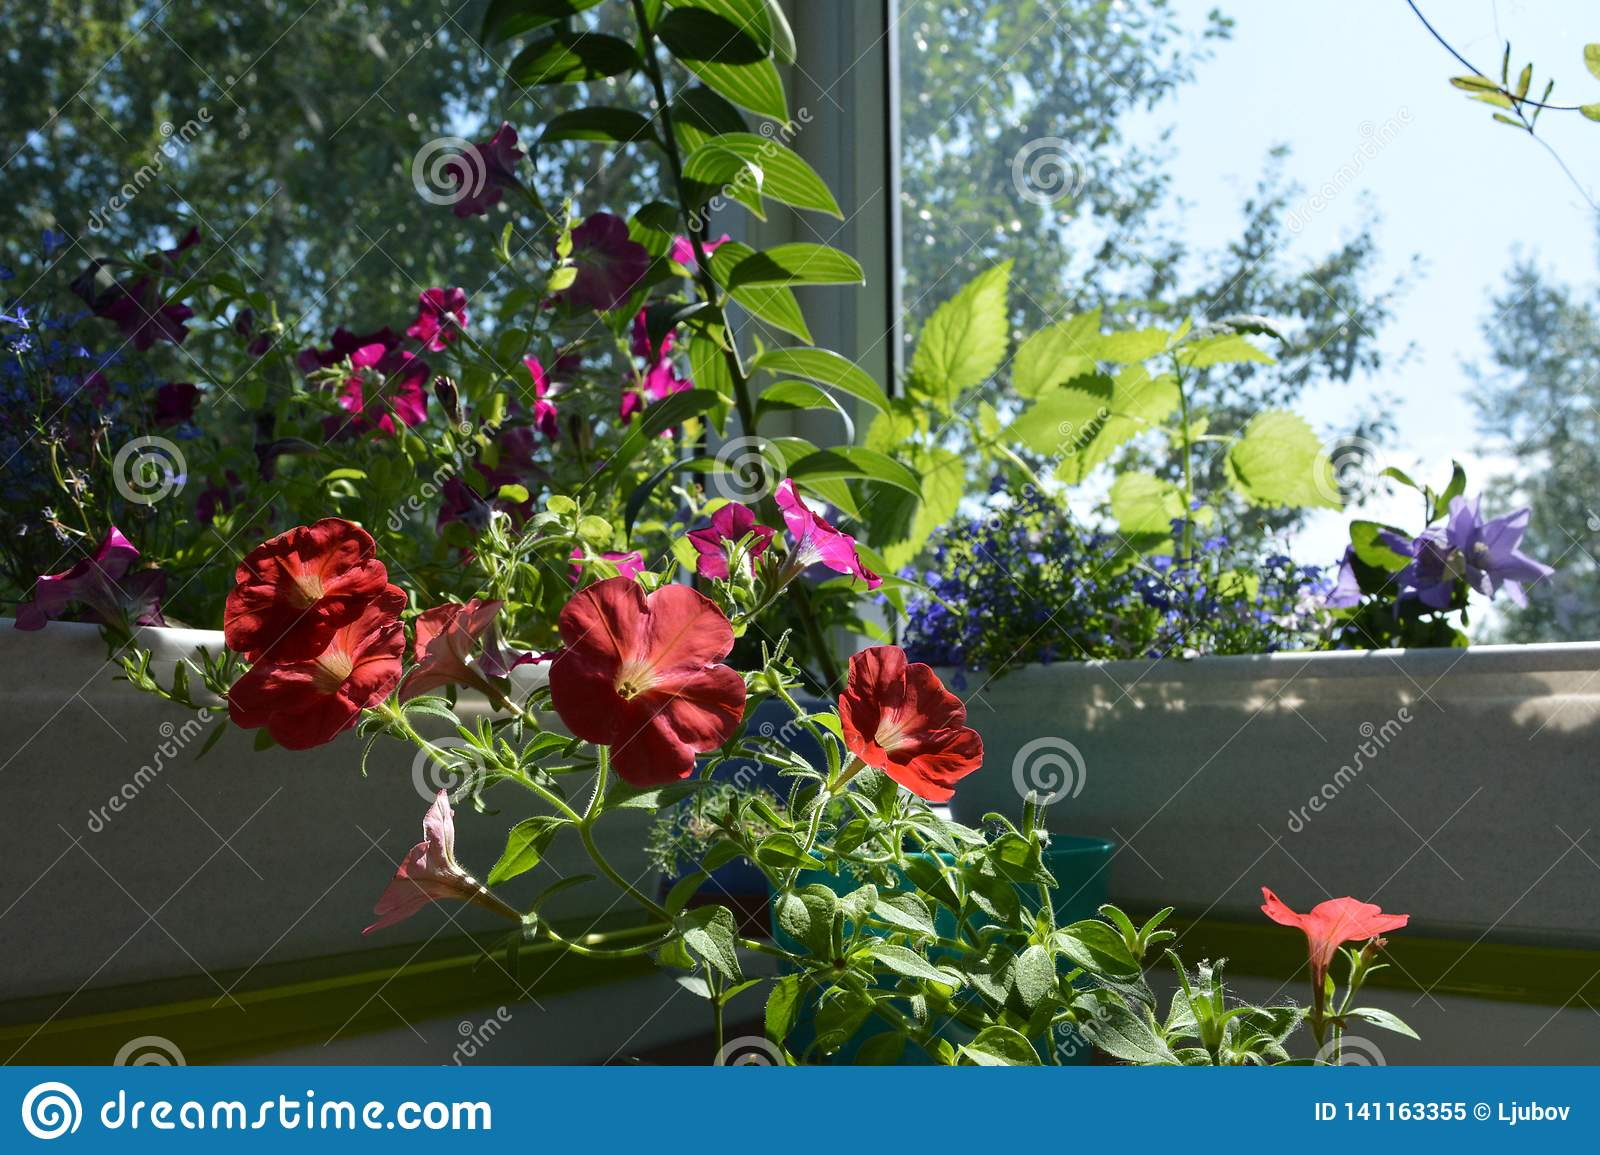 Red Petunia Flowers In Sunny Summer Day Small Garden On The Balcony With Blooming Plants In Containers And Pots Stock Image Image Of Flowers Hybrida 141163355